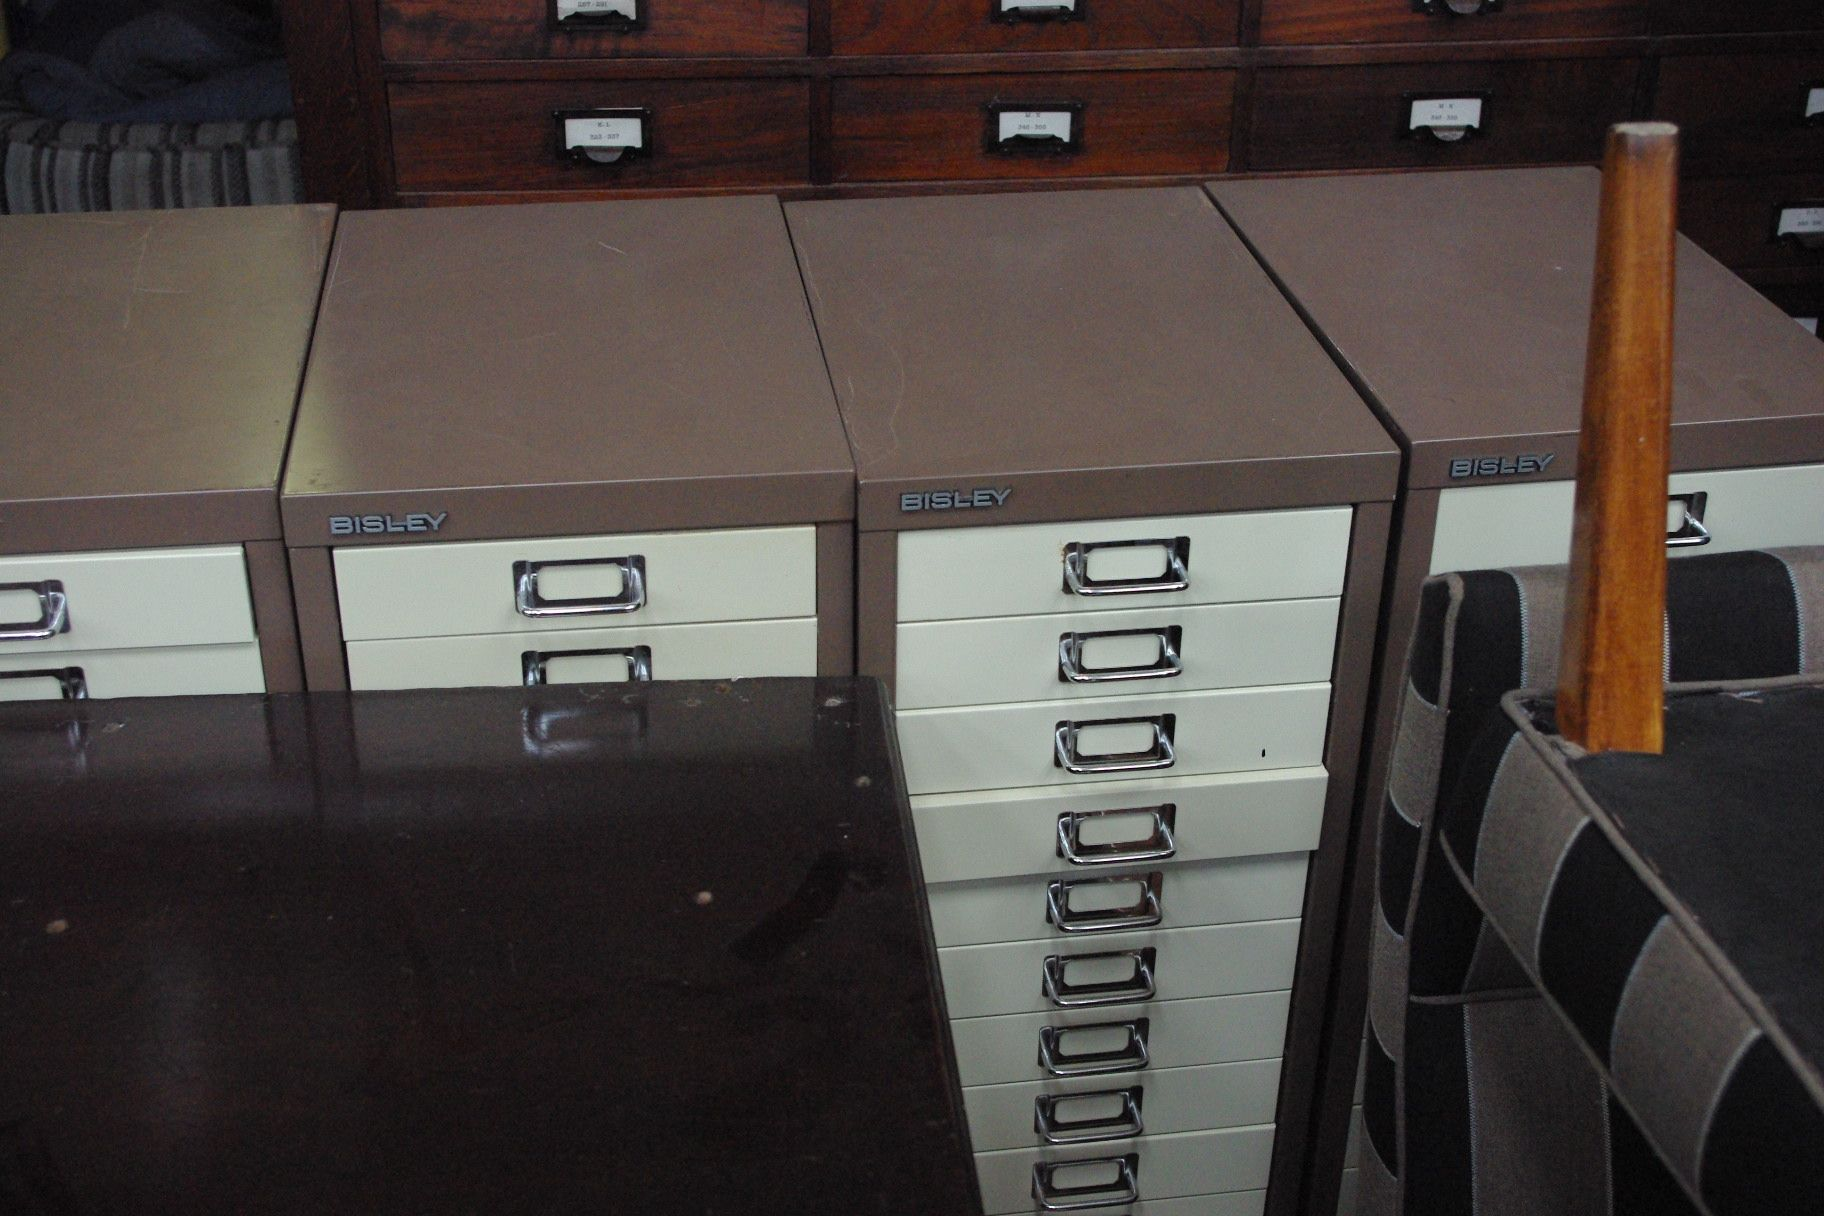 filing cabinets (don't think we'll hire, just took pic!)